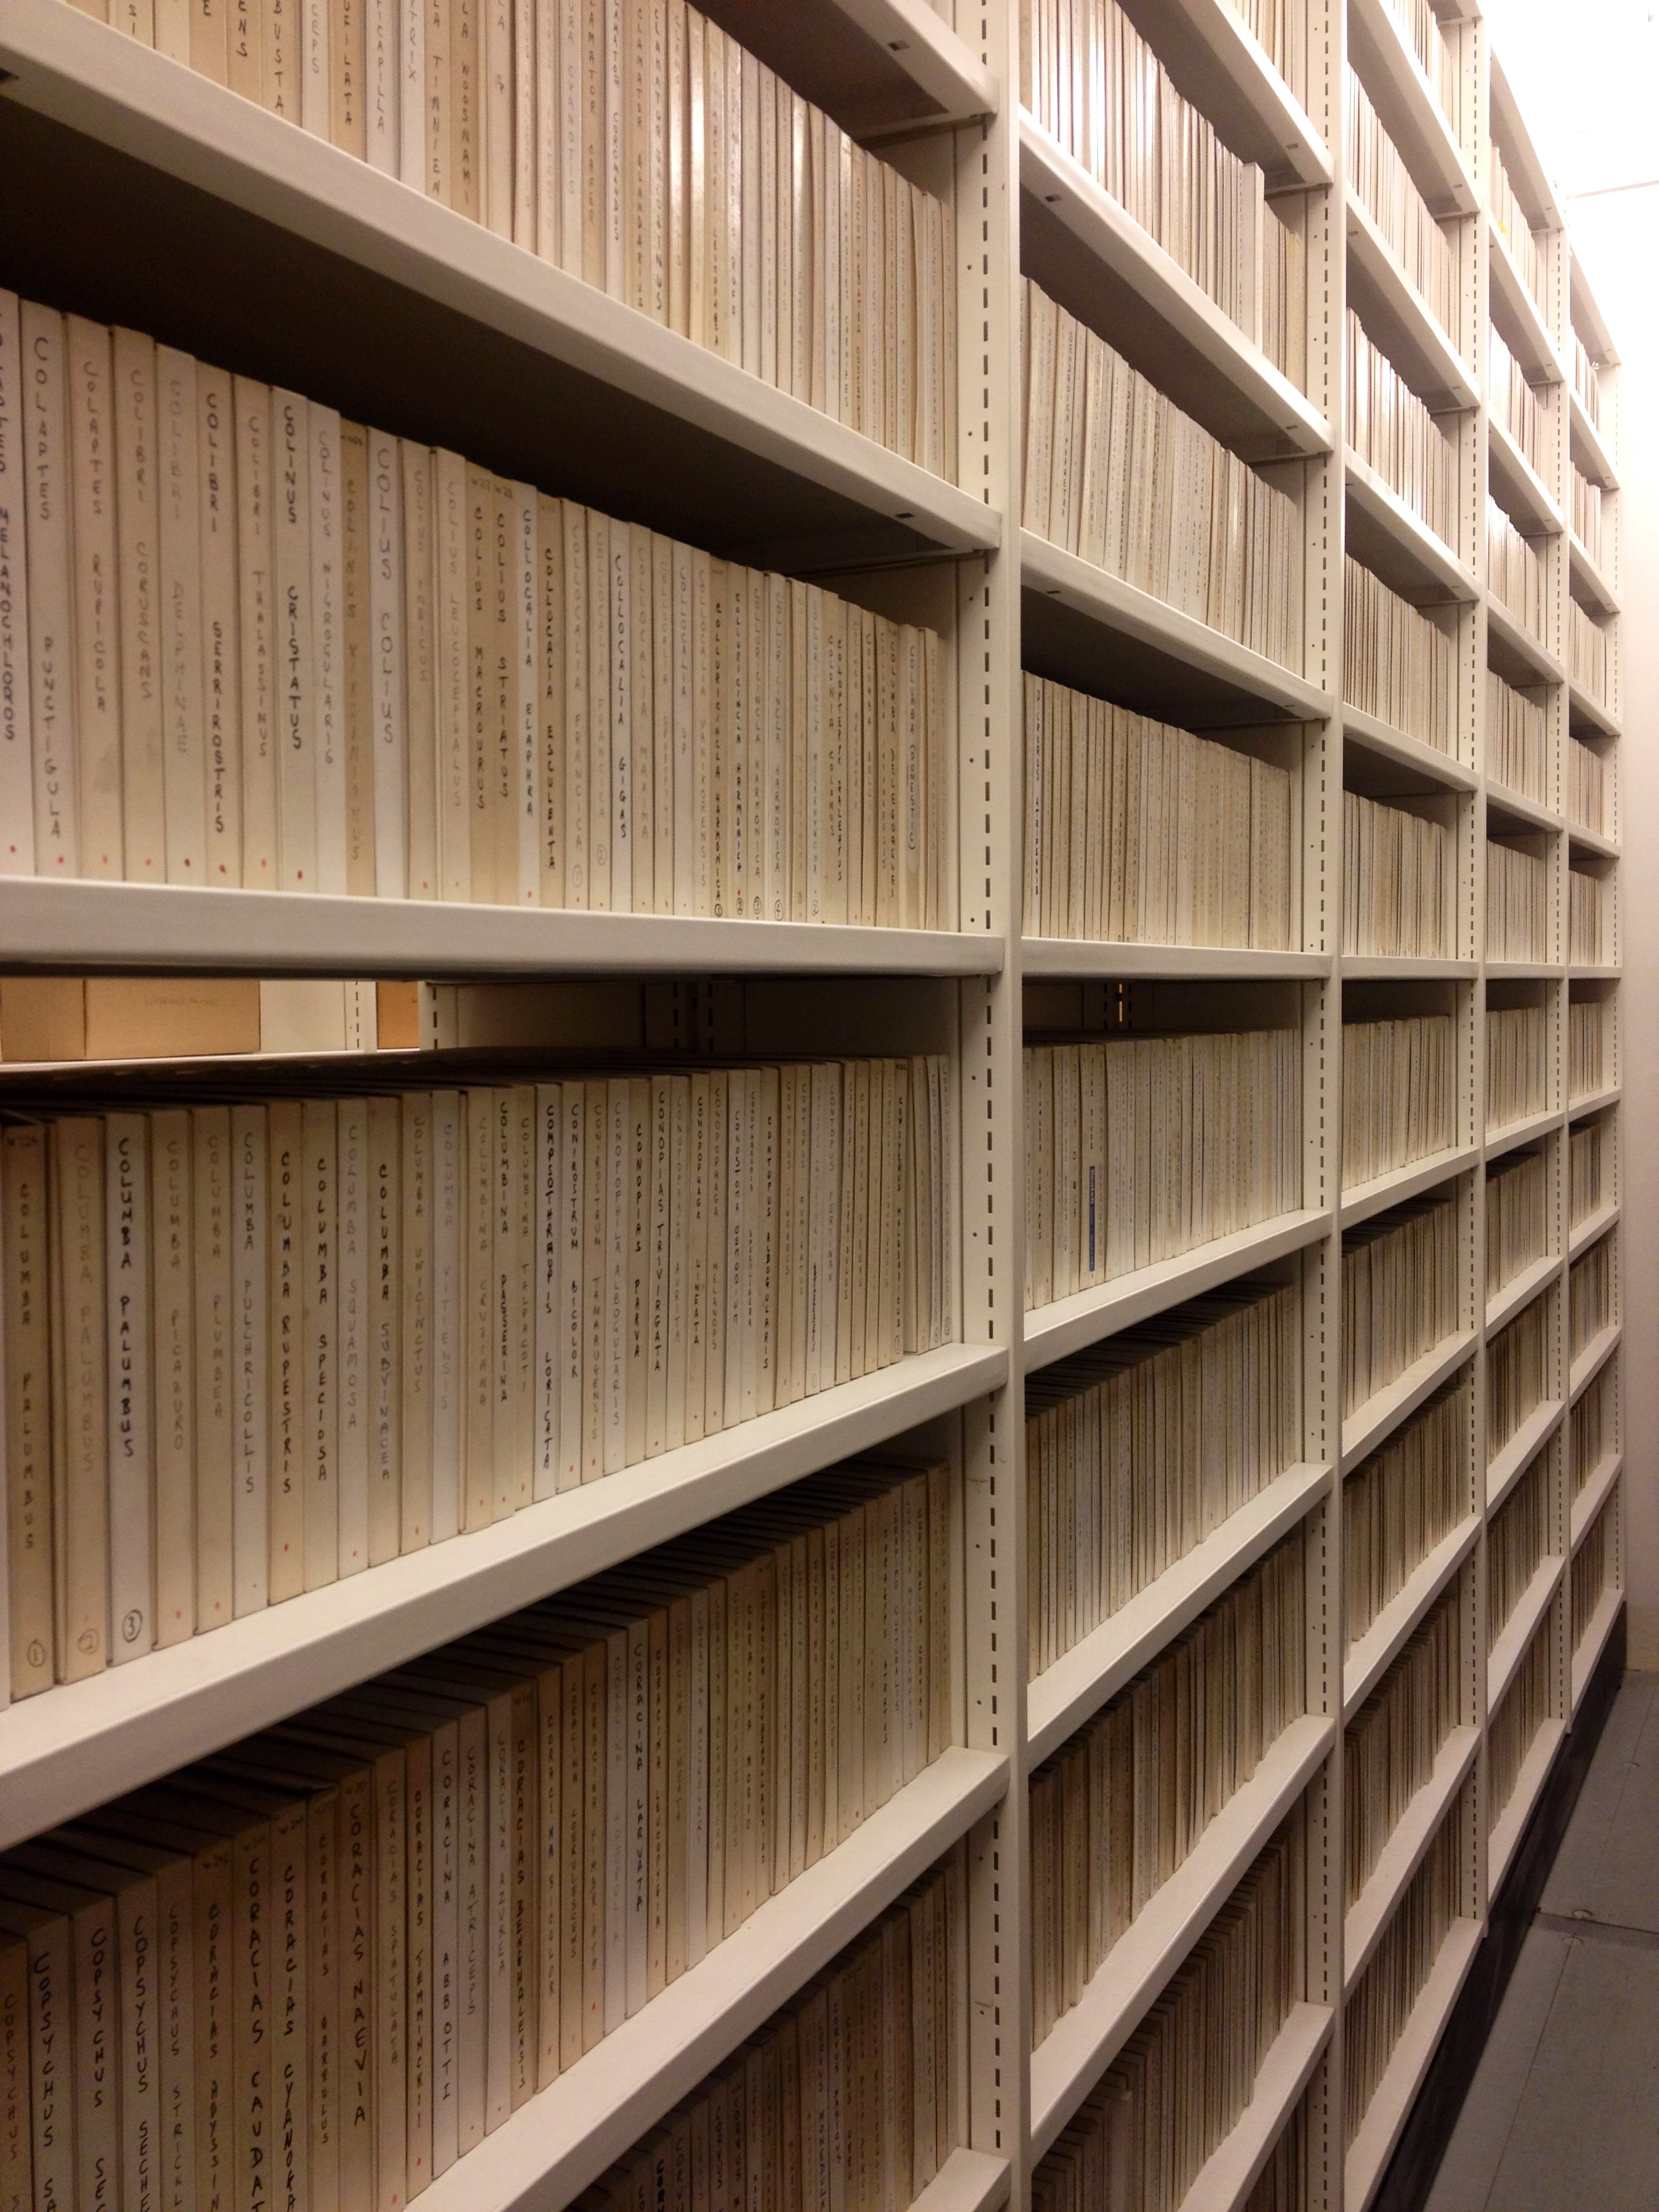 Image of library records on shelves